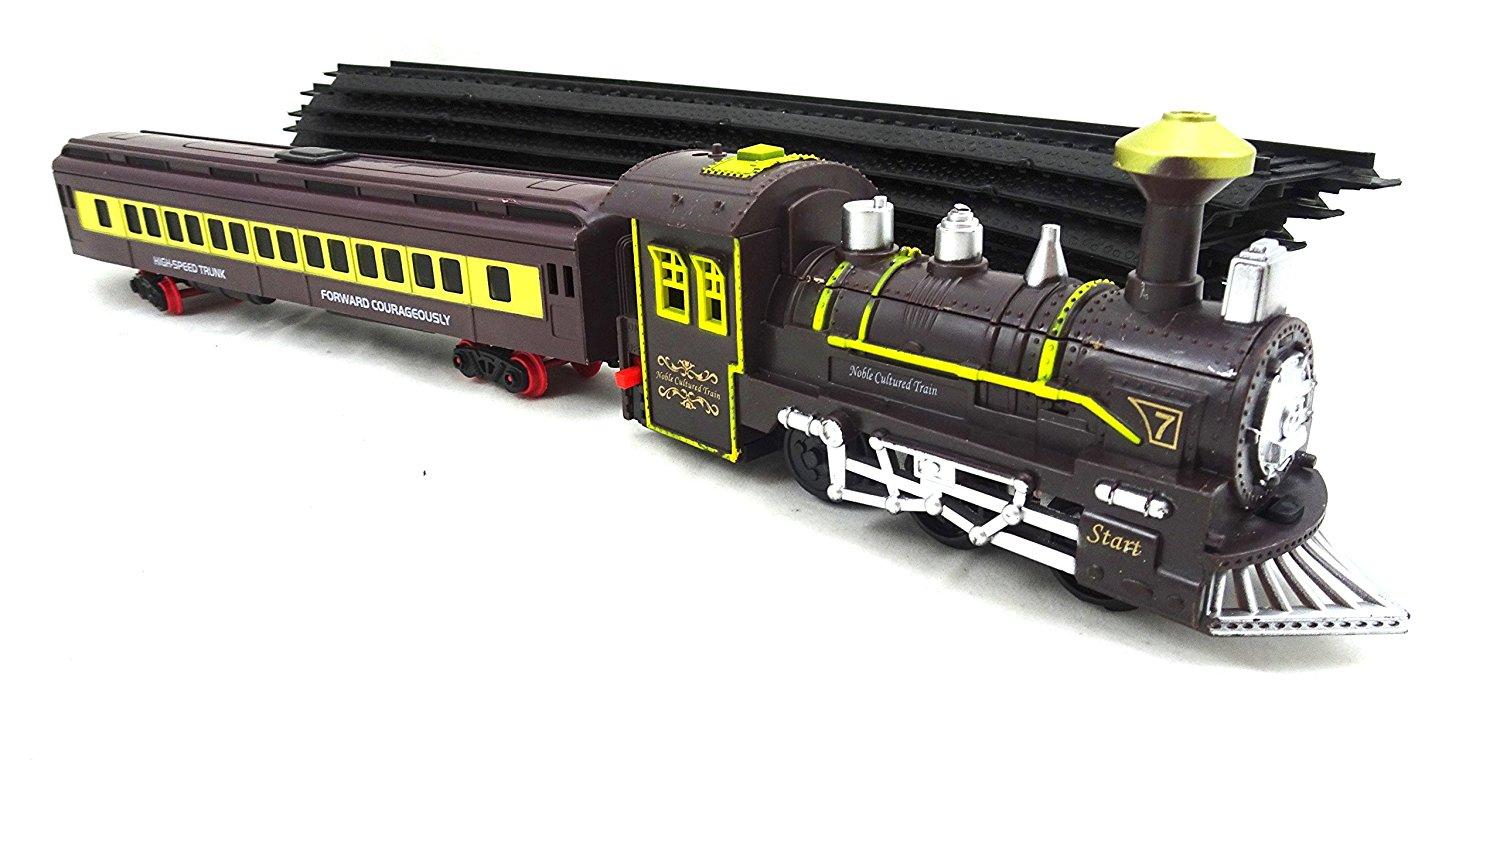 Locomotive Classic Toy Train With Working Headlights - Includes Train Track And Battery Operated Train